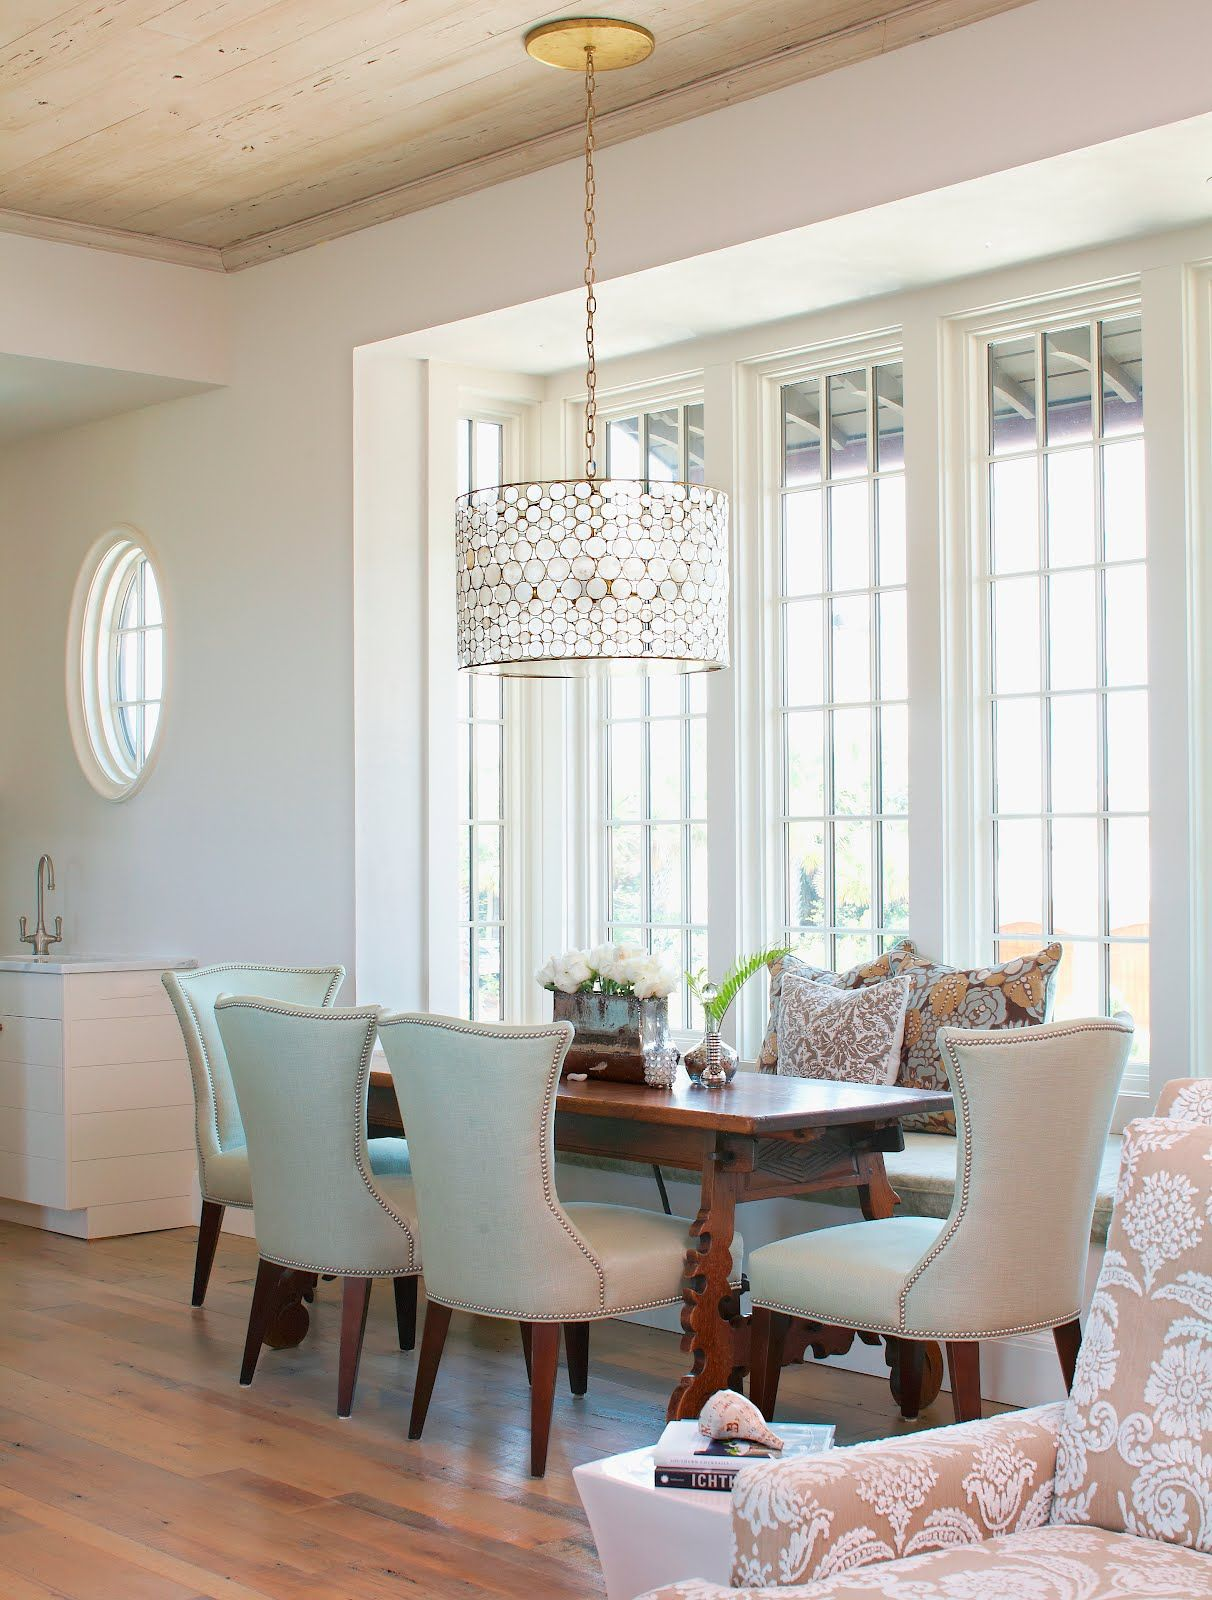 Dining Rooms With Drum Lighting | Dining Room In A Beach House With A  Serena Drum